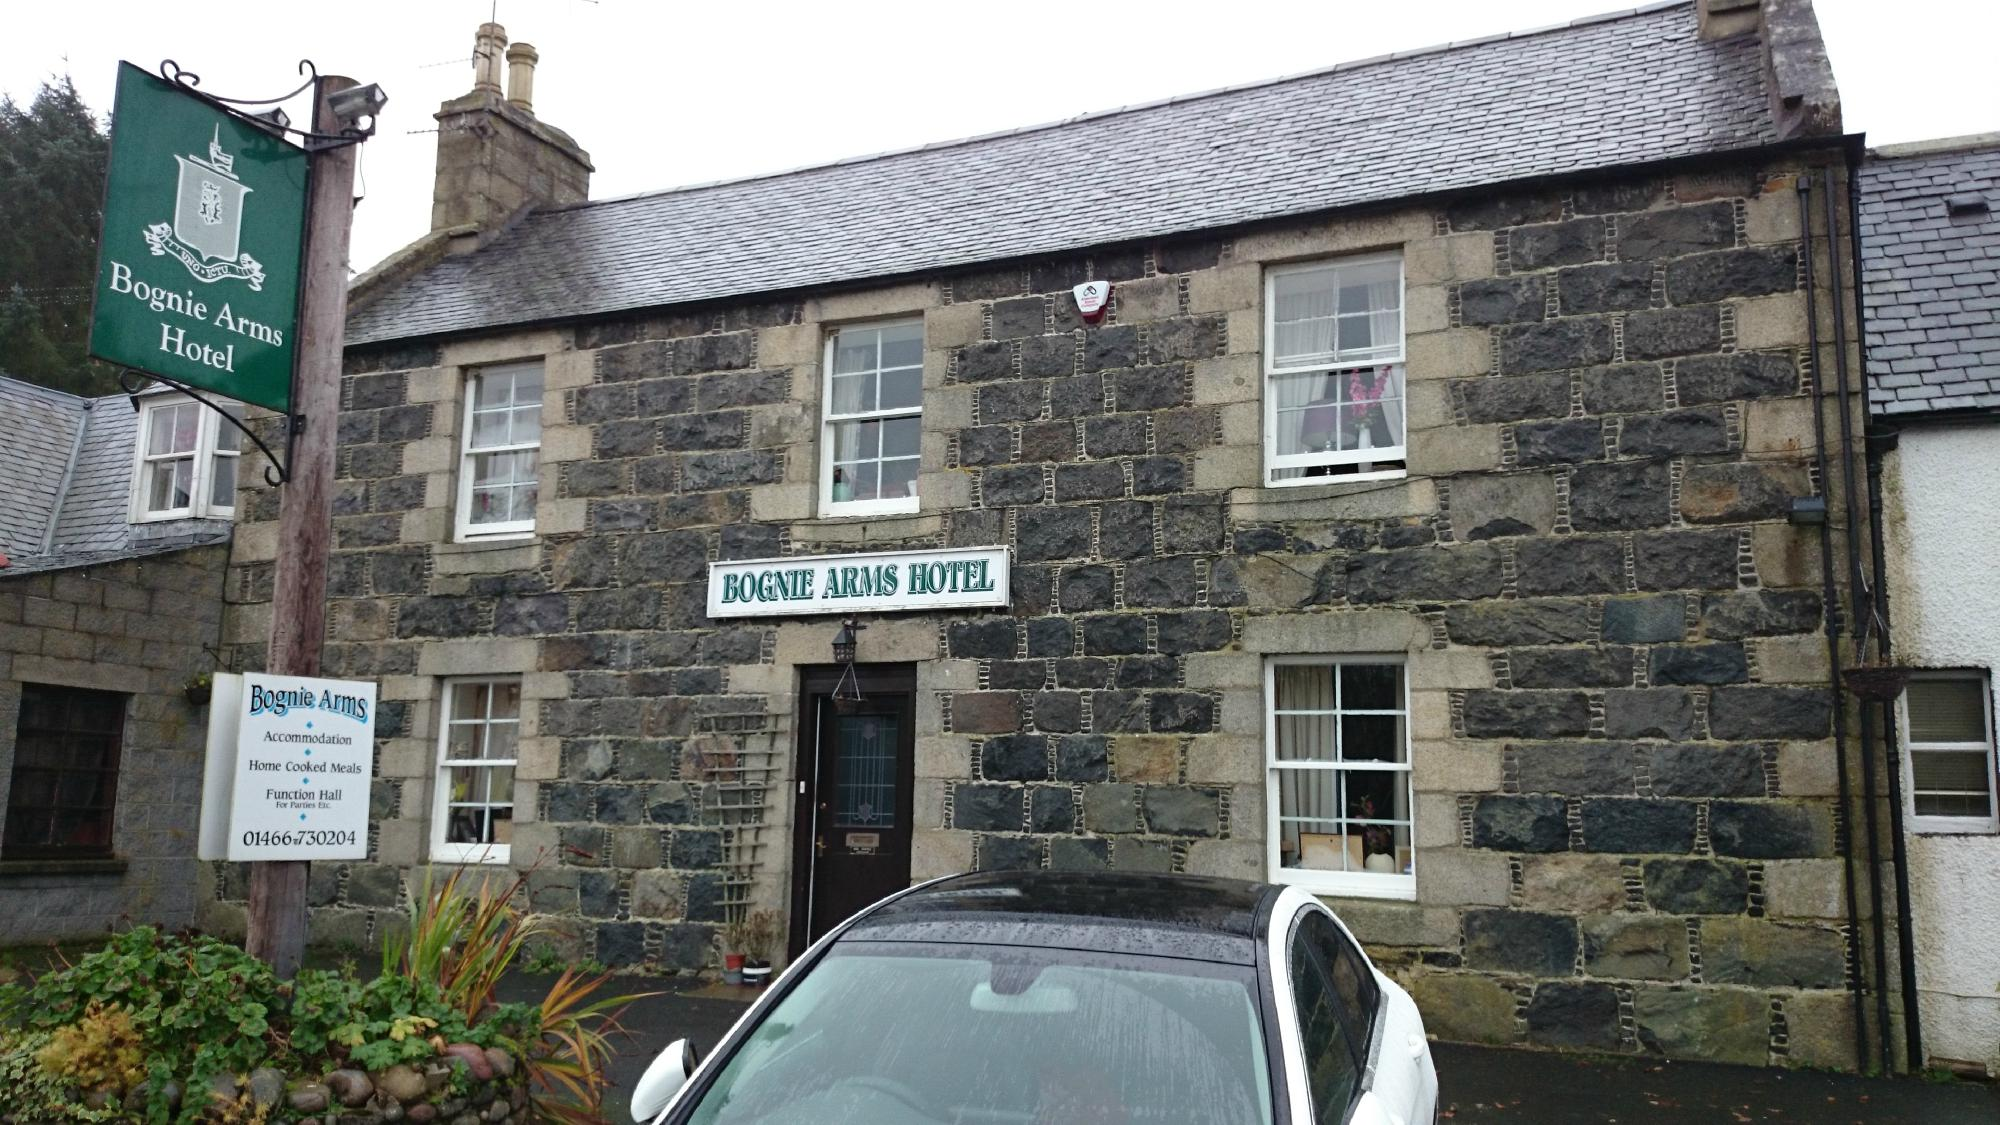 Bognie Arms Hotel